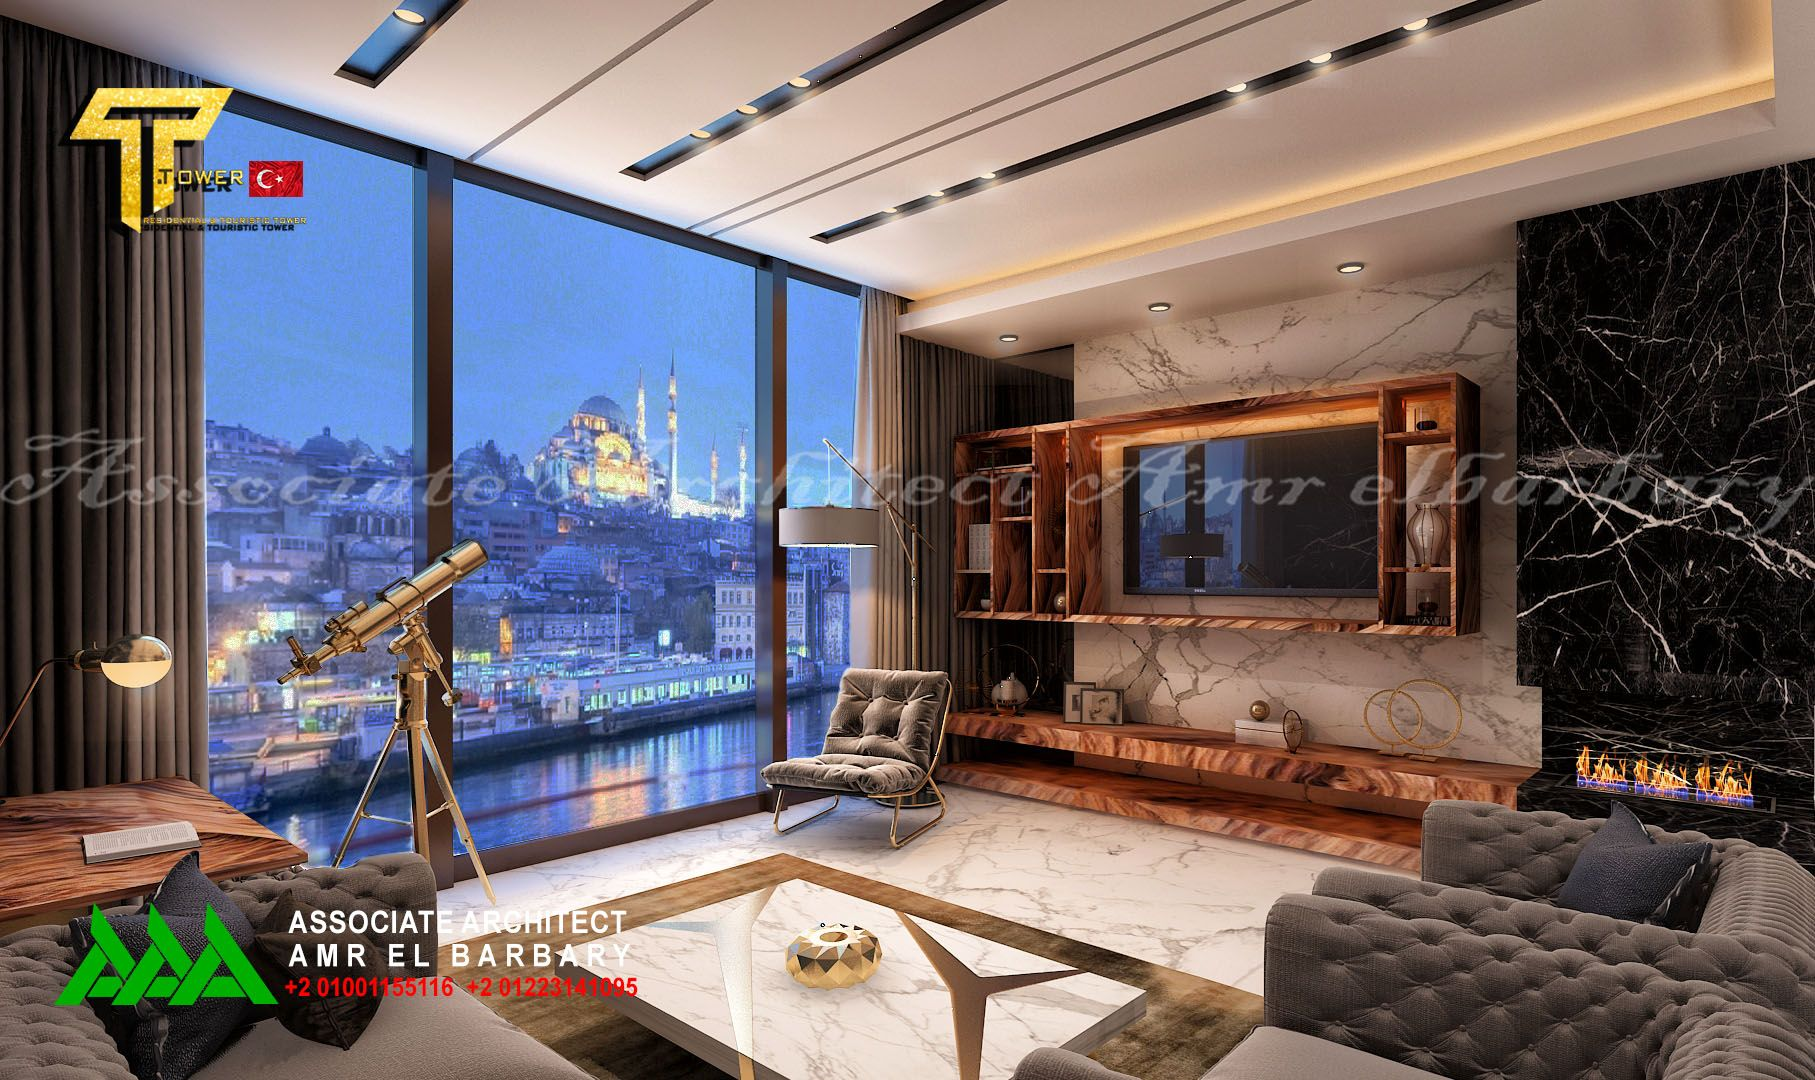 t tower turkey istanbul from the interior decorations of studio rh pinterest com